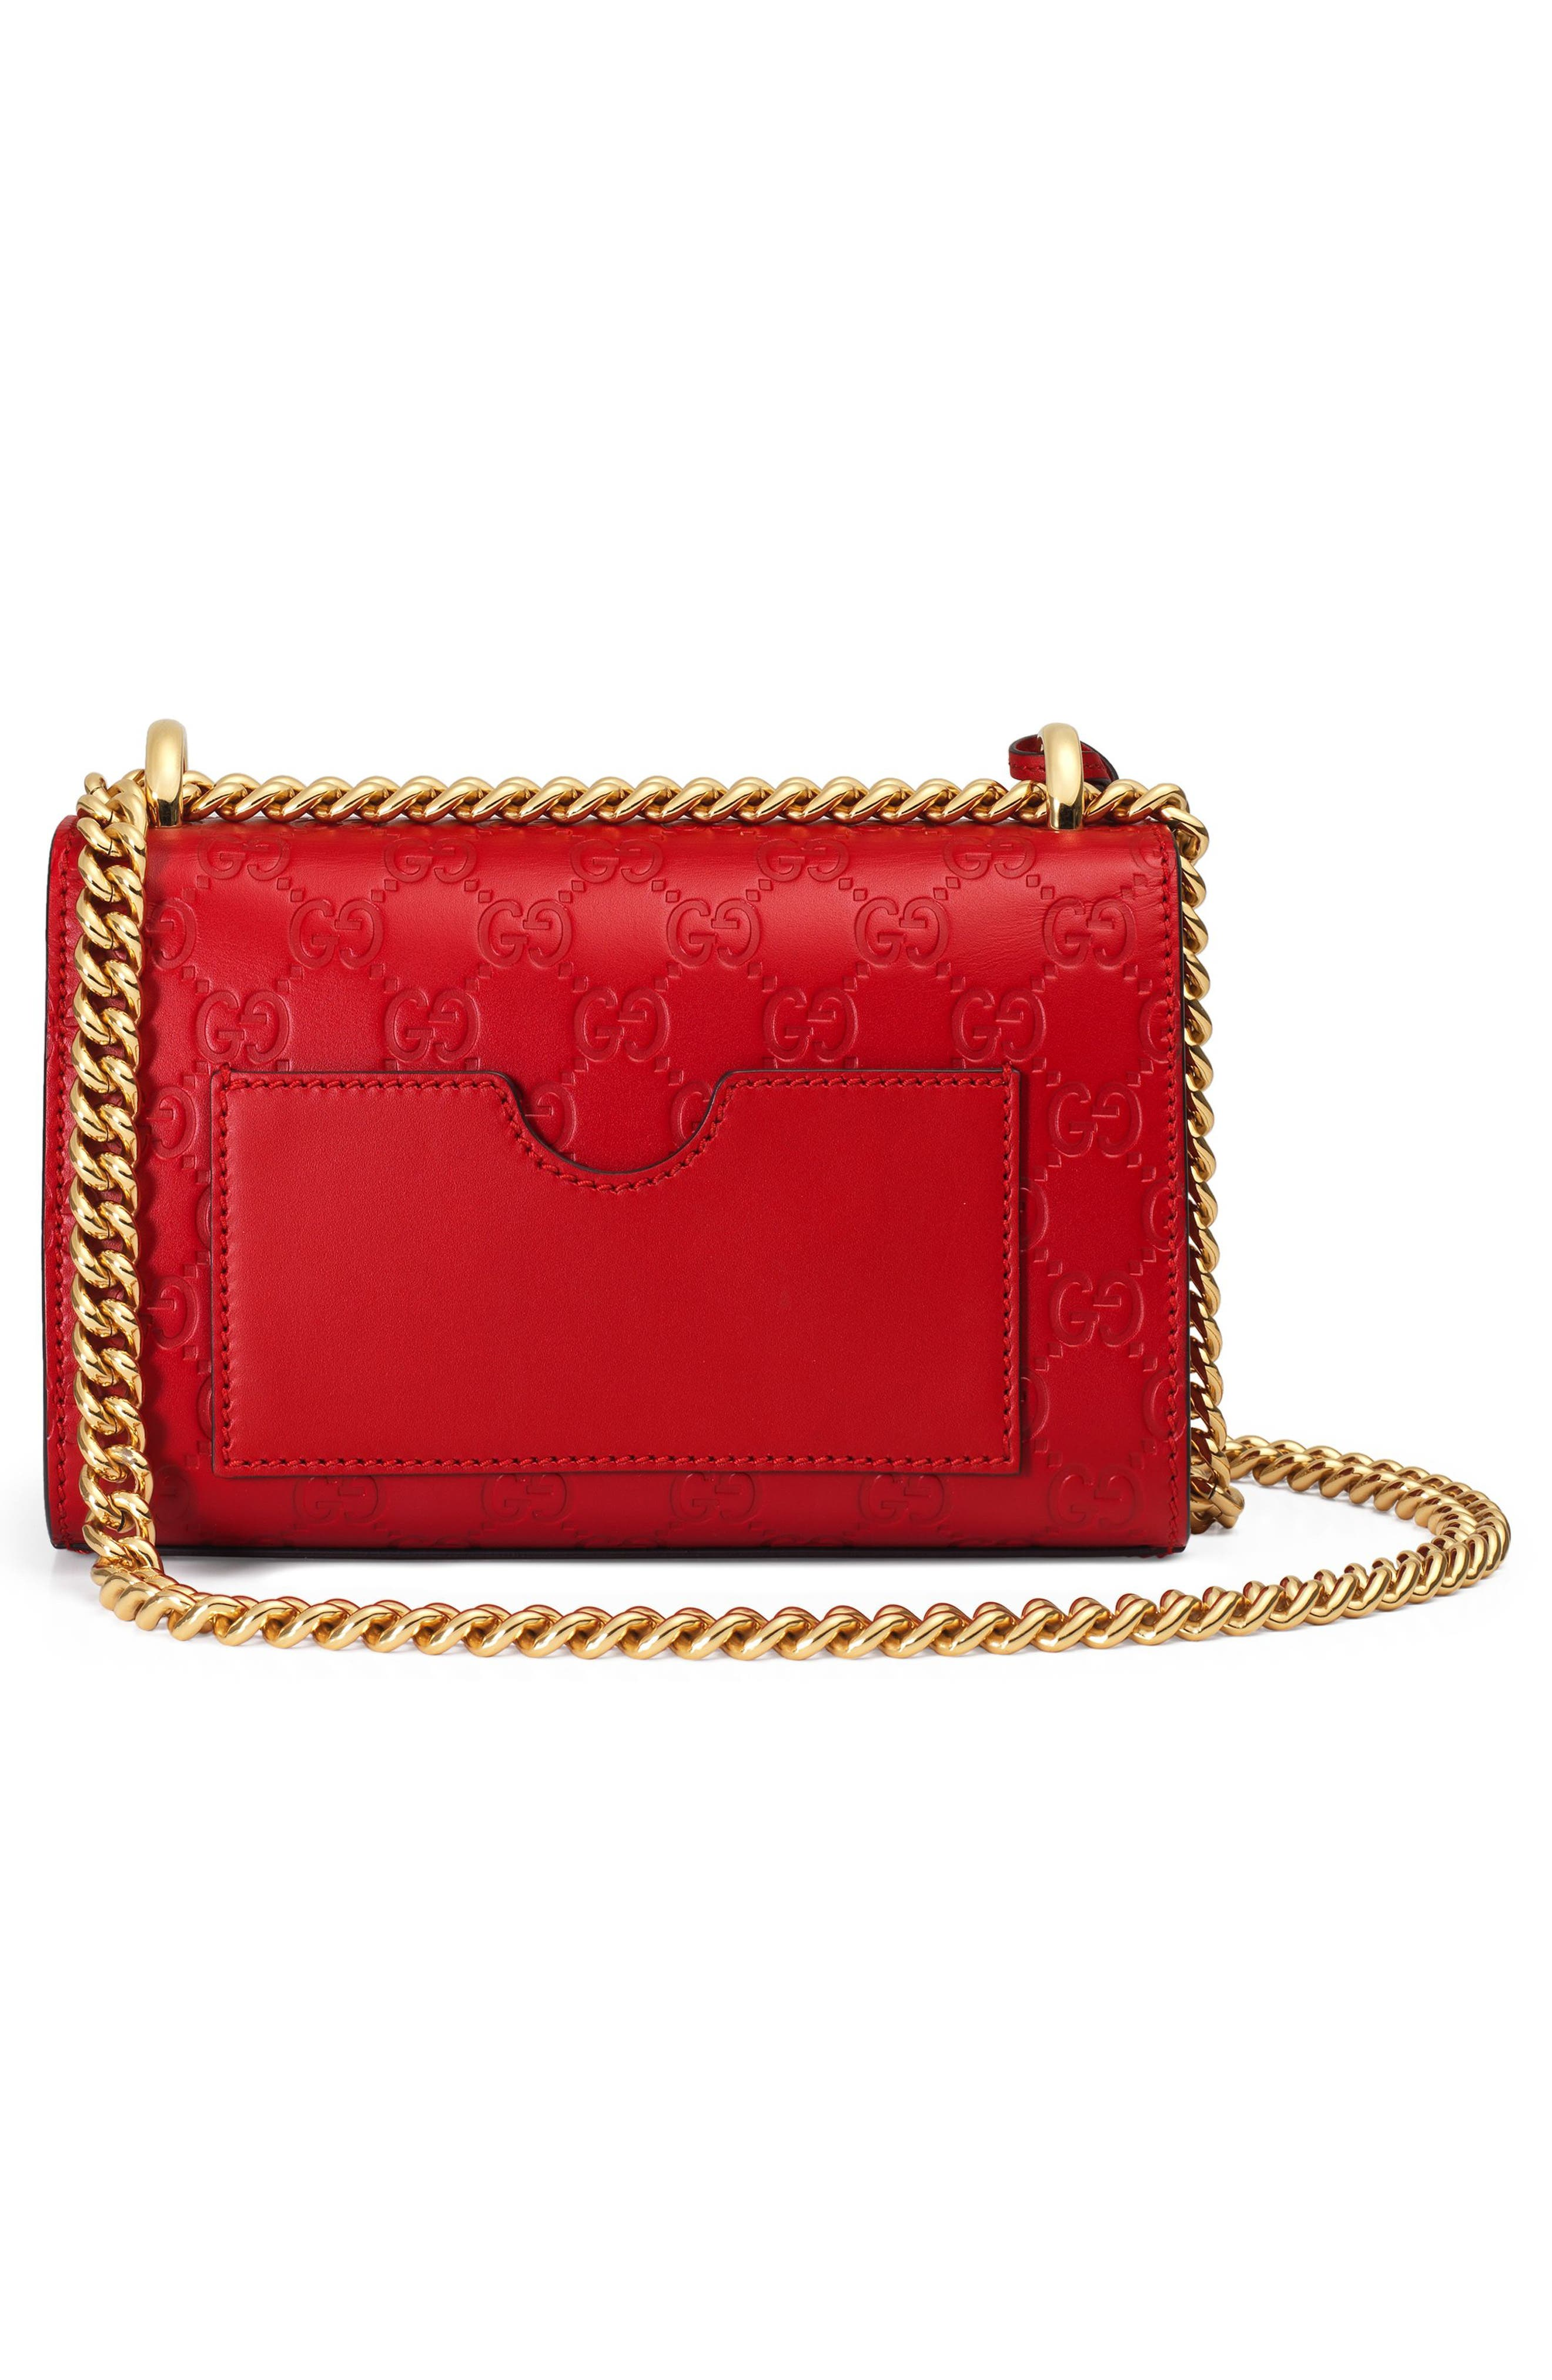 Small Padlock Signature Leather Shoulder Bag,                             Alternate thumbnail 2, color,                             HIBISCUS RED